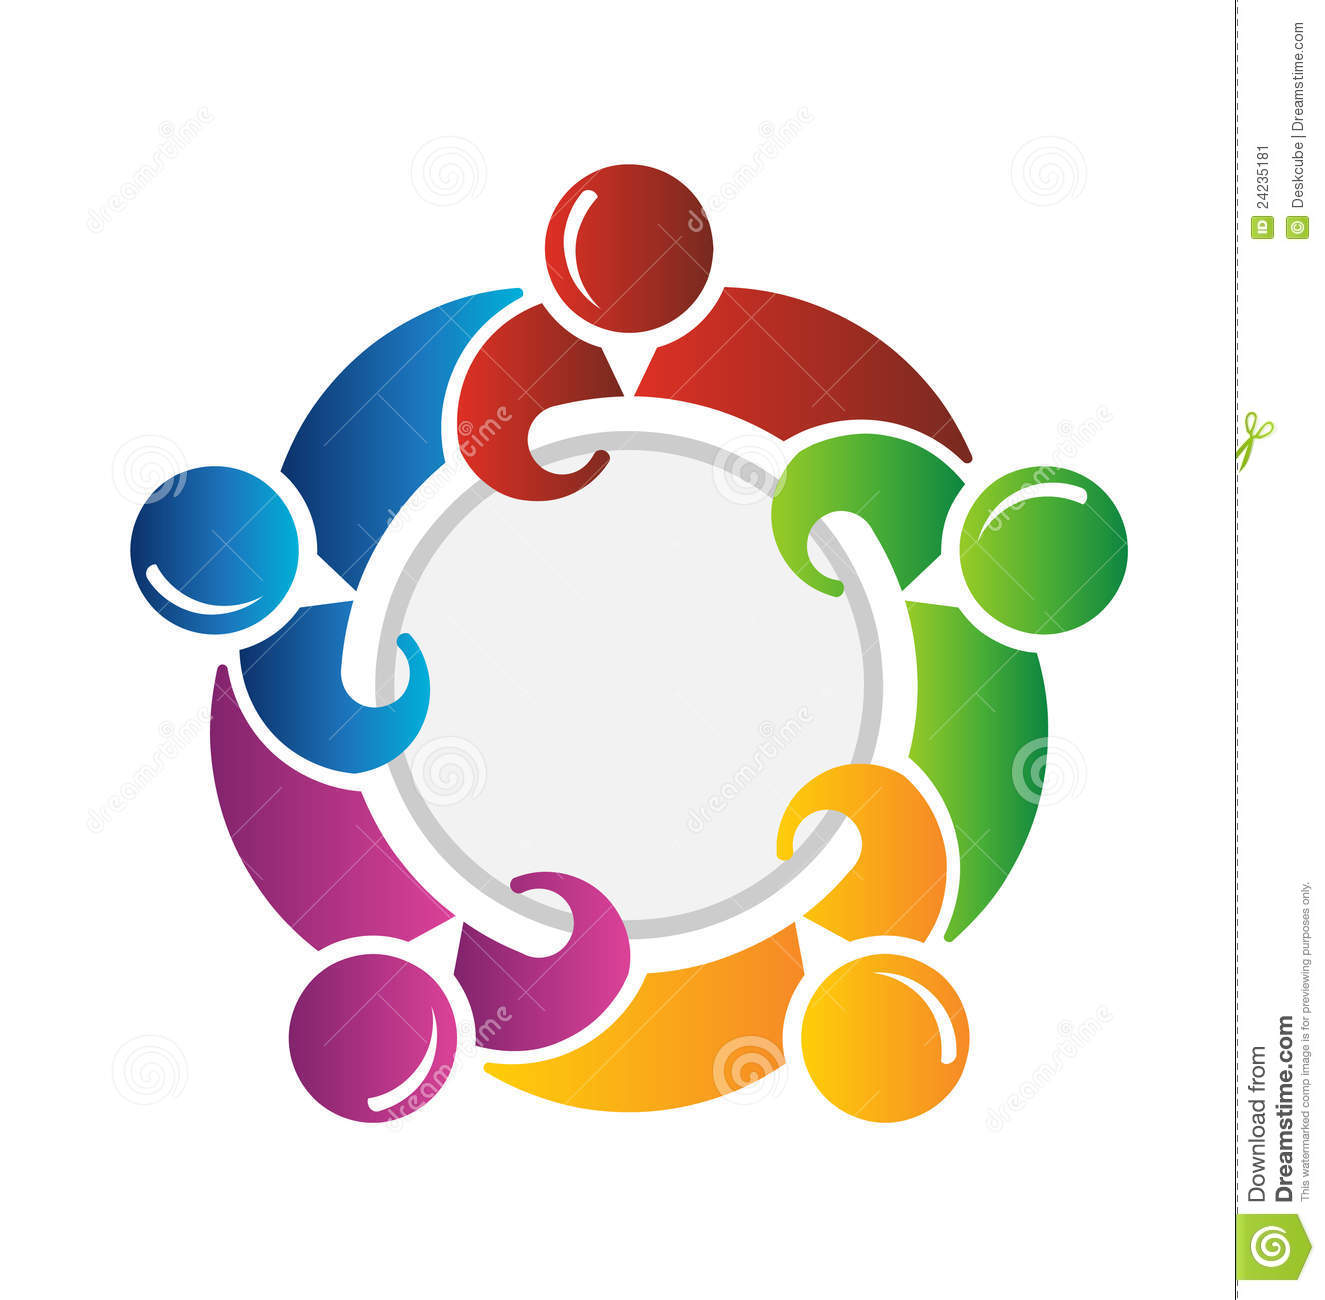 group teamwork Teamwork is the collaborative effort of a team to achieve a common goal or to  complete a task in the most effective and efficient way this concept is seen  within the greater framework of a team, which is a group.